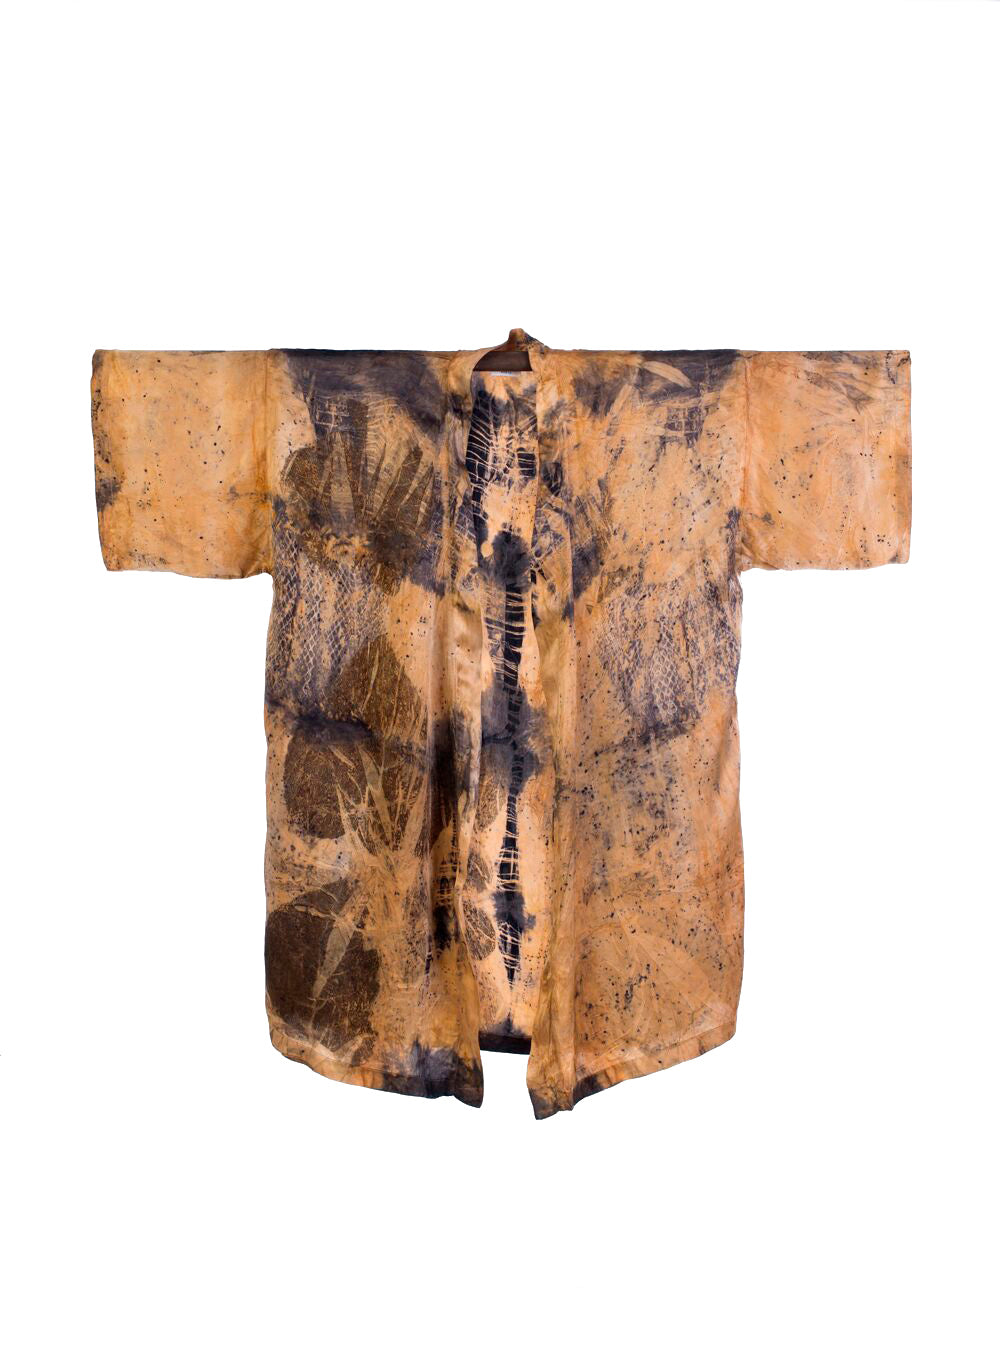 Bush Dyed Silk Robe by Jeanelle Mamarika